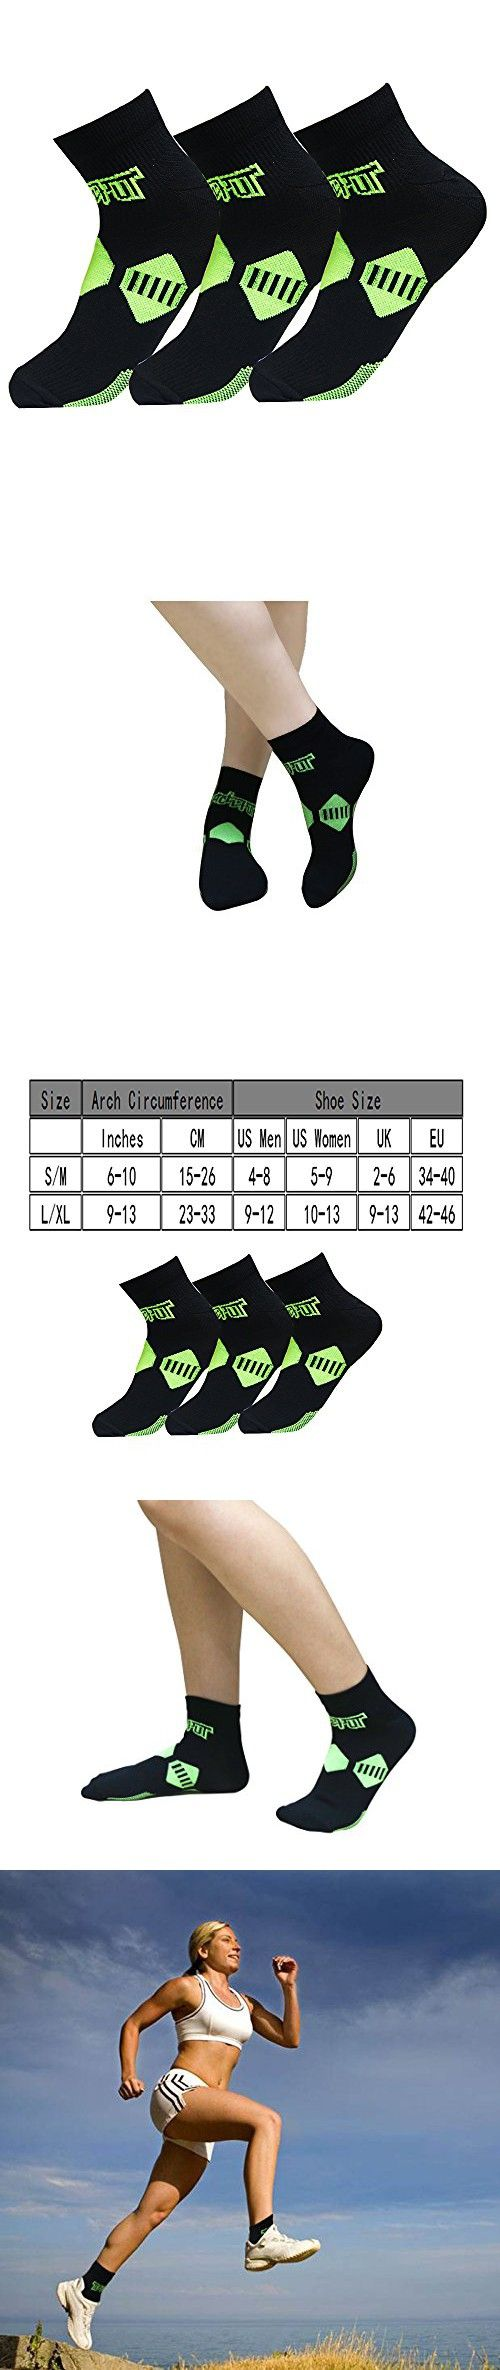 Plantar Fasciitis Socks with Arch & Ankle Support,(3 Pairs) Best Foot Care Compression Sock Brace Support, Eases Swelling & Heel Spurs, Relieve Pain Fast Increases Circulation (S/M, Black)